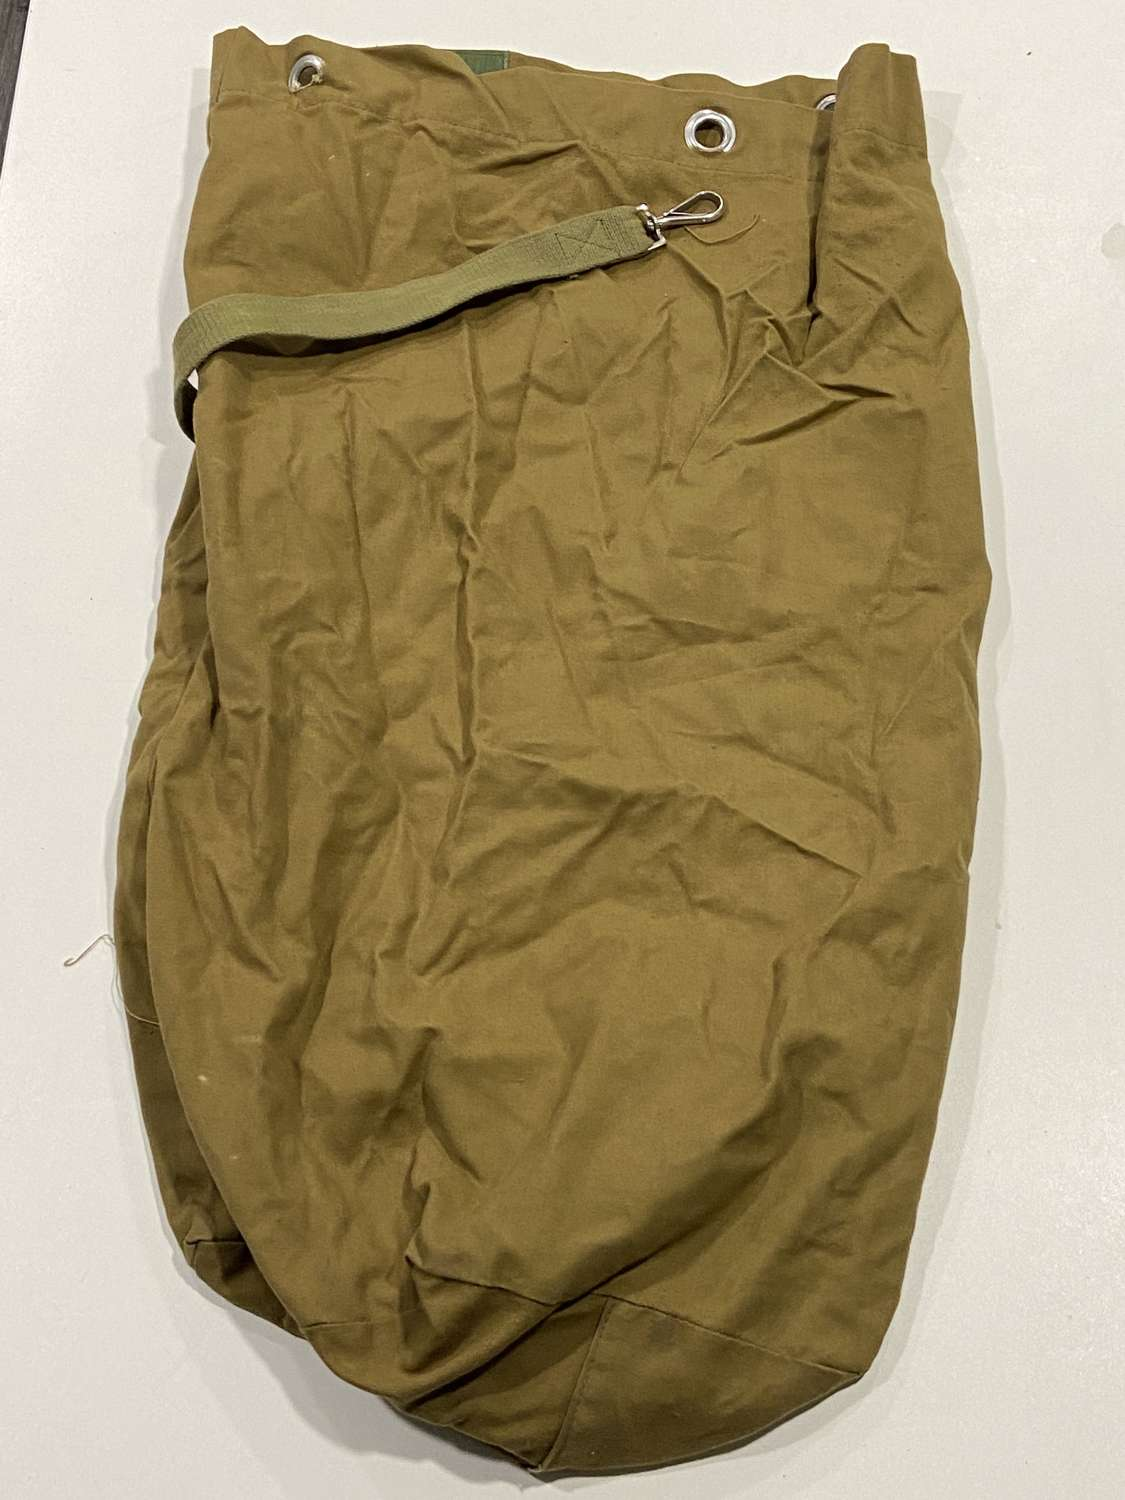 1960s British army surplus duffle bag GDR East German